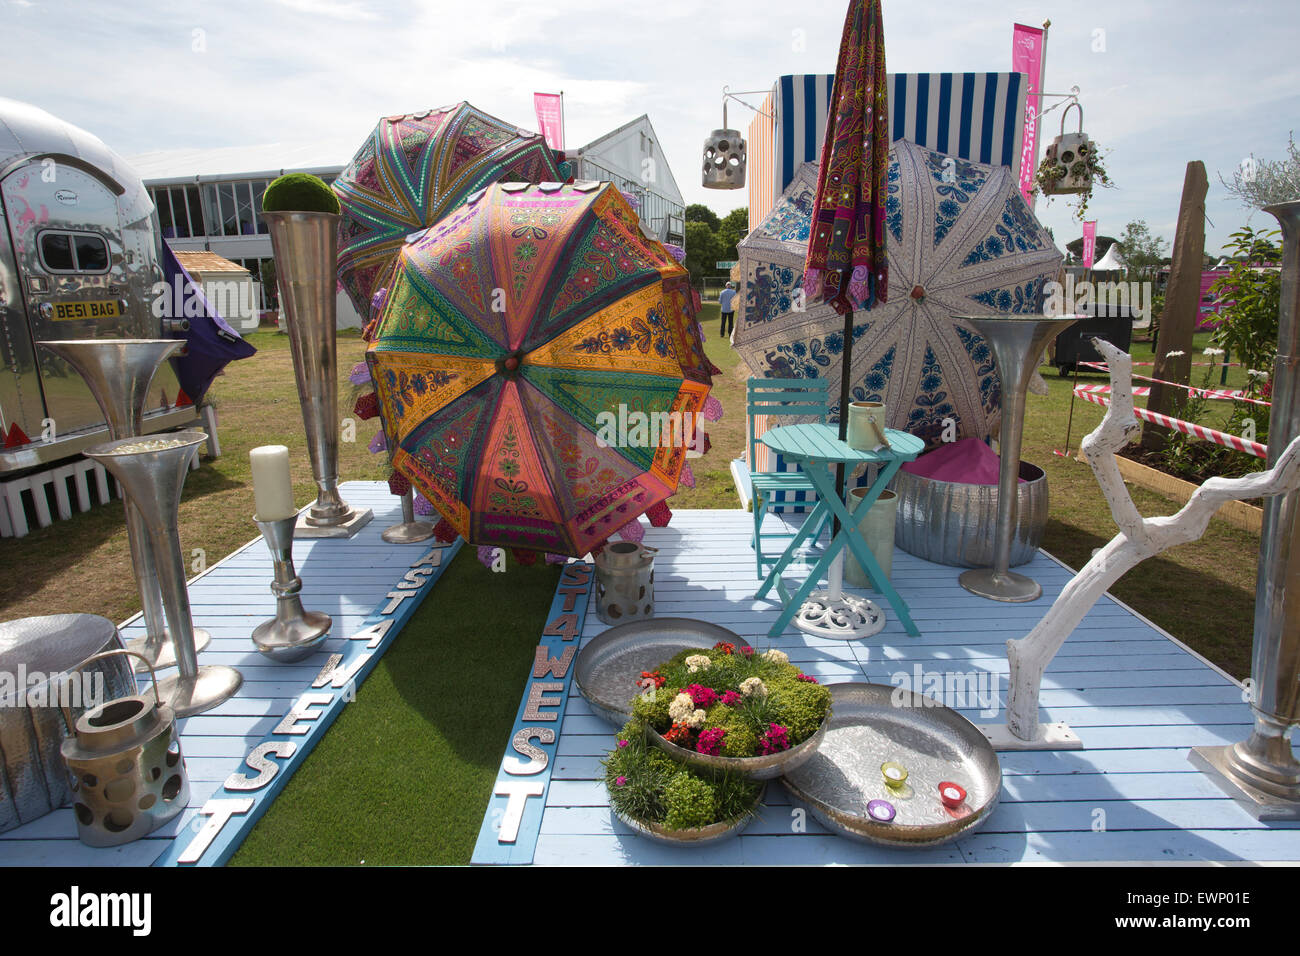 RHS Hampton Court Flower Show 2015, Umbrellas And Garden Furniture  Ornaments On Exhibition At The RHS Hampton Show, England, UK